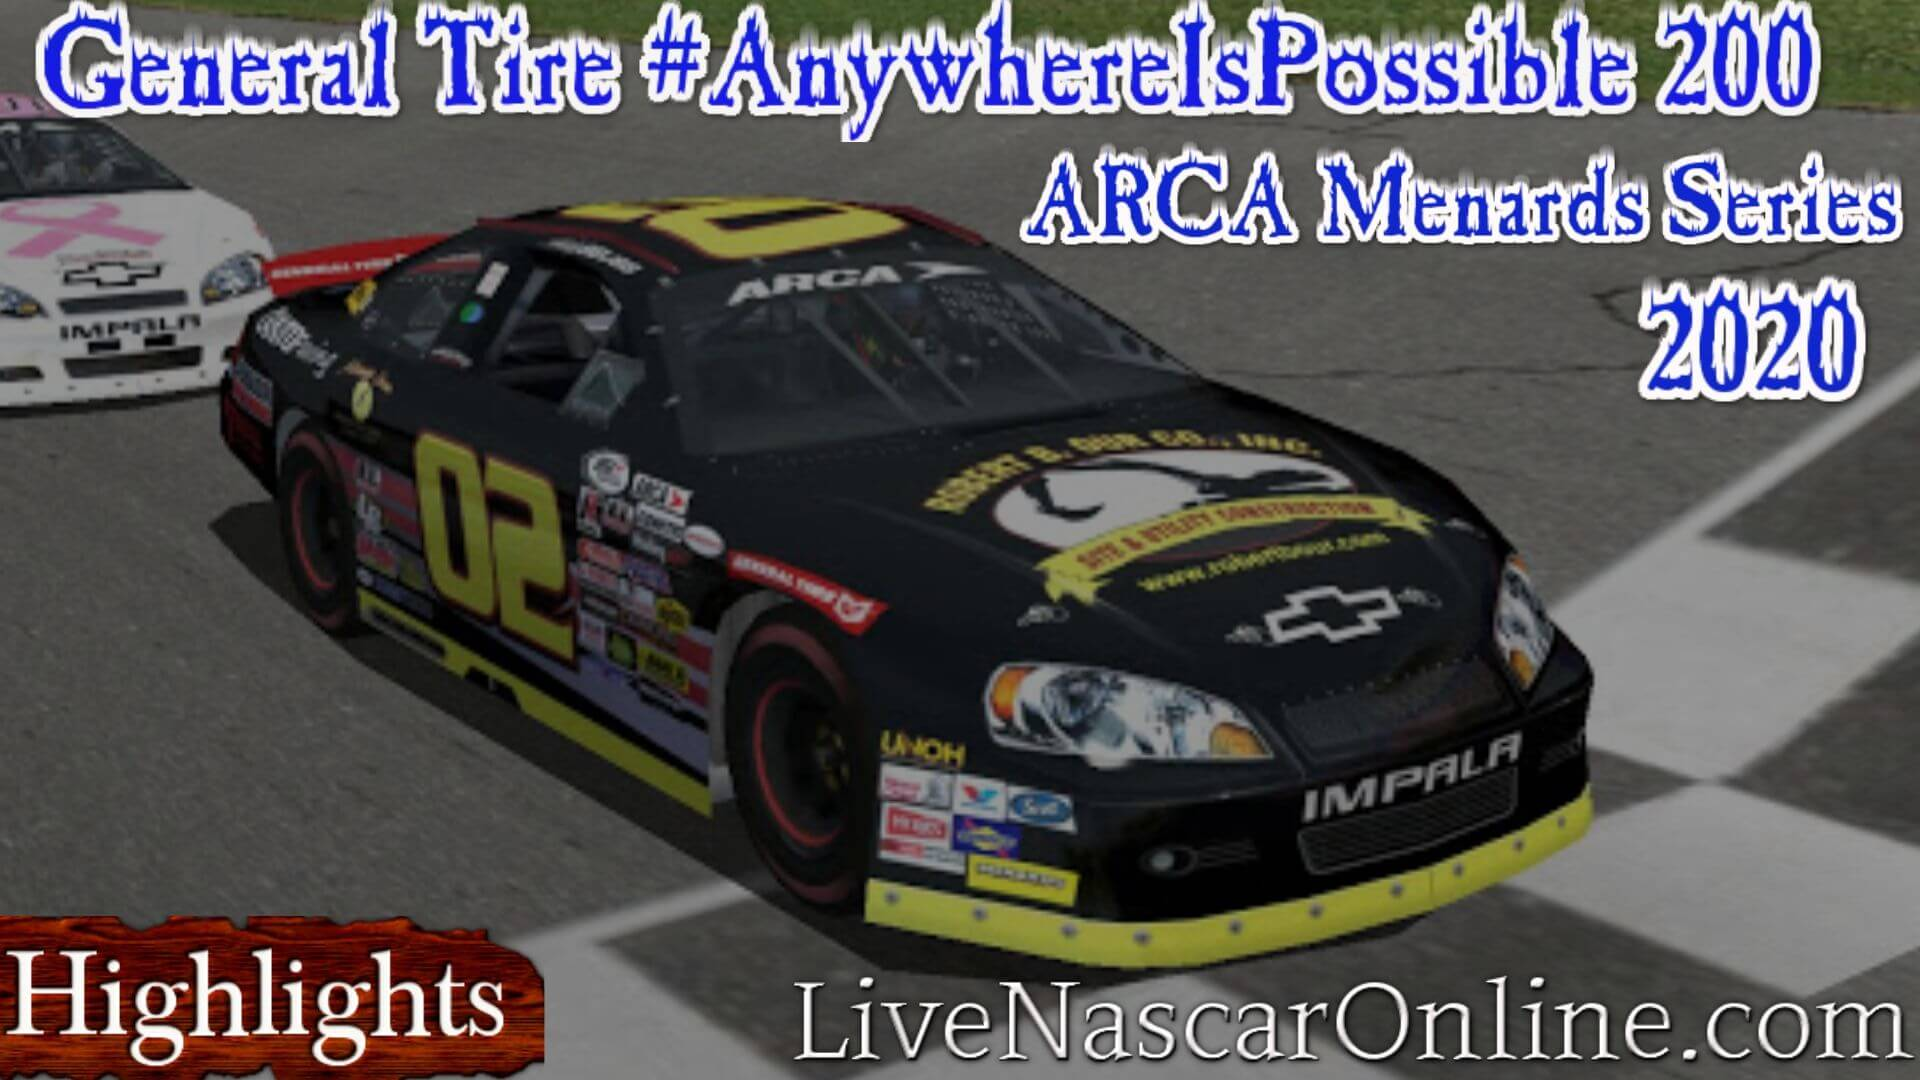 General Tire AnywhereIsPossible 200 Arca 2020 Highlights